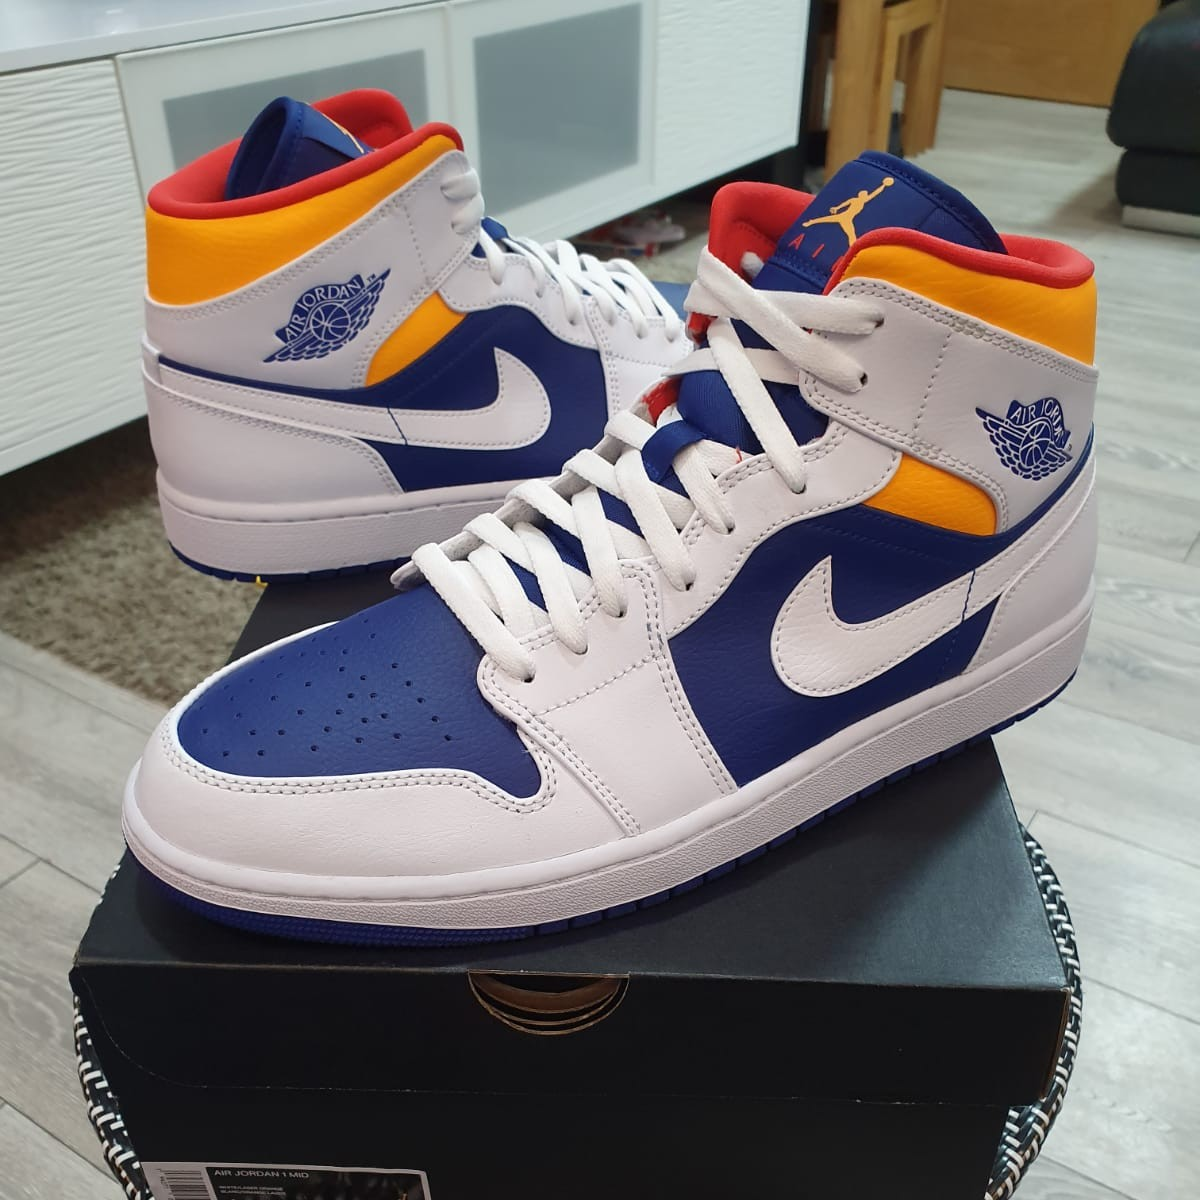 Nike Air Jordan 1 Mid Royal Blue Laser Orange White... - Depop